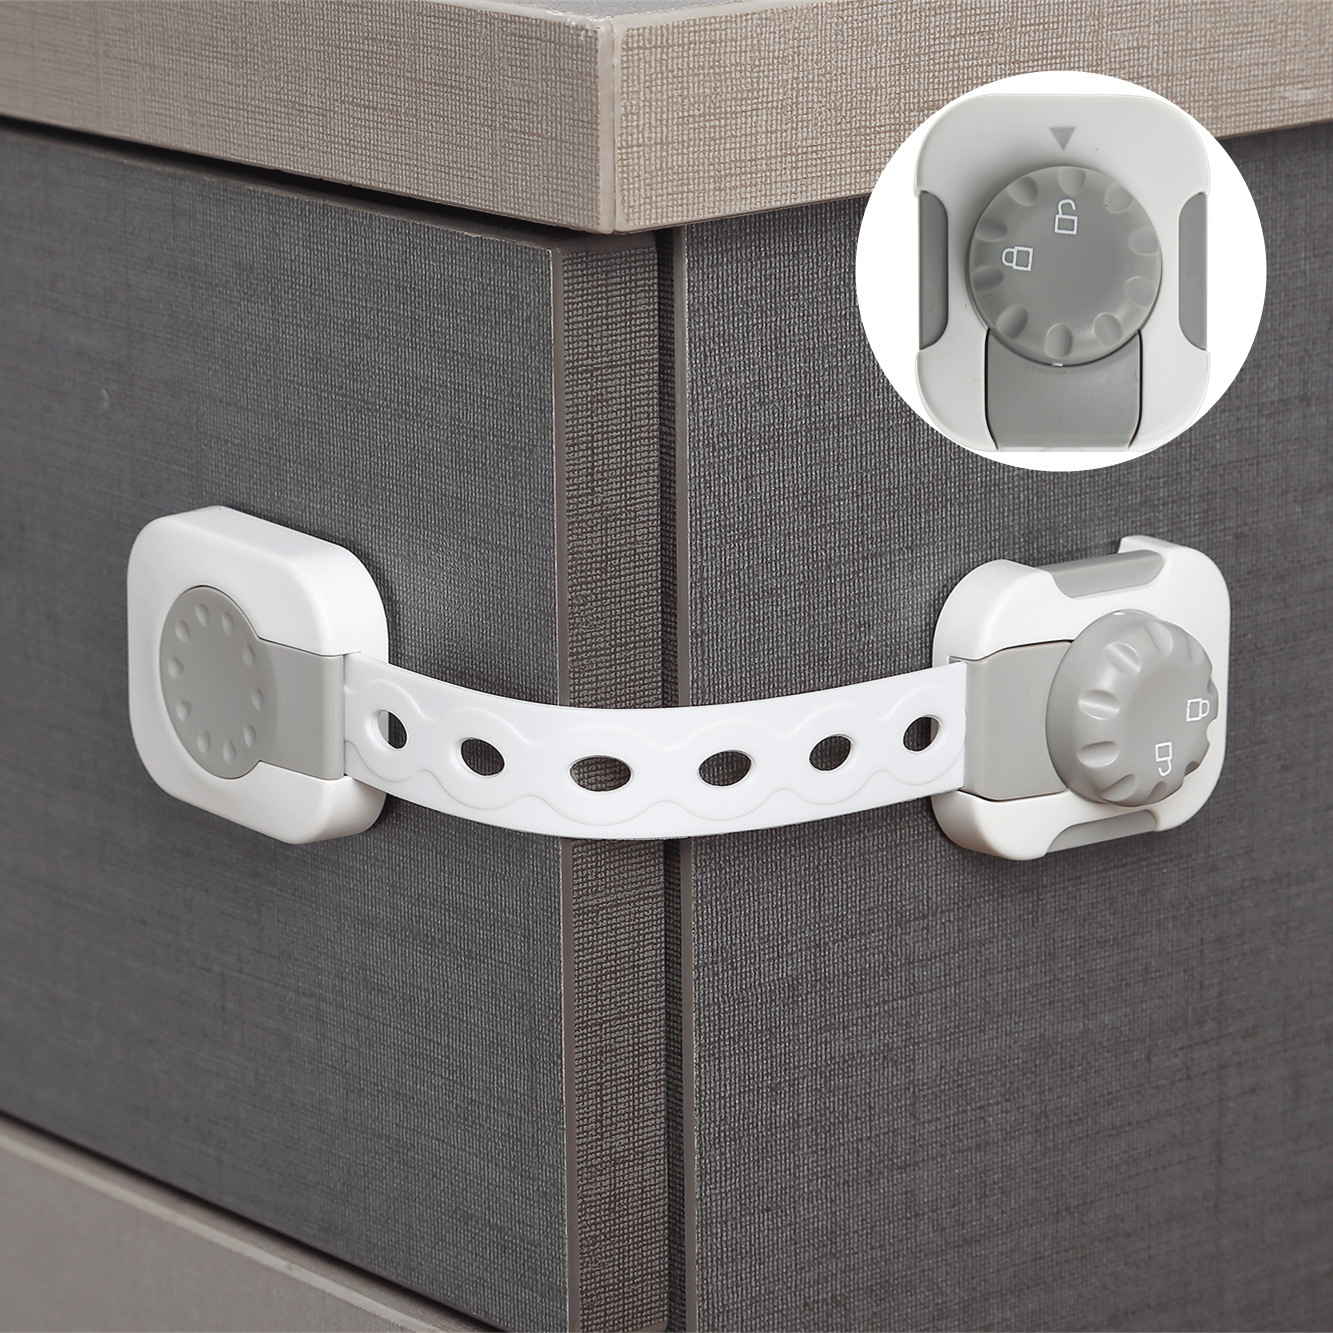 Child Safety Locks  No Tools Or Drilling Adjustable Size Flexible Adhesive Furniture Latches For Baby Proofing Cabinets